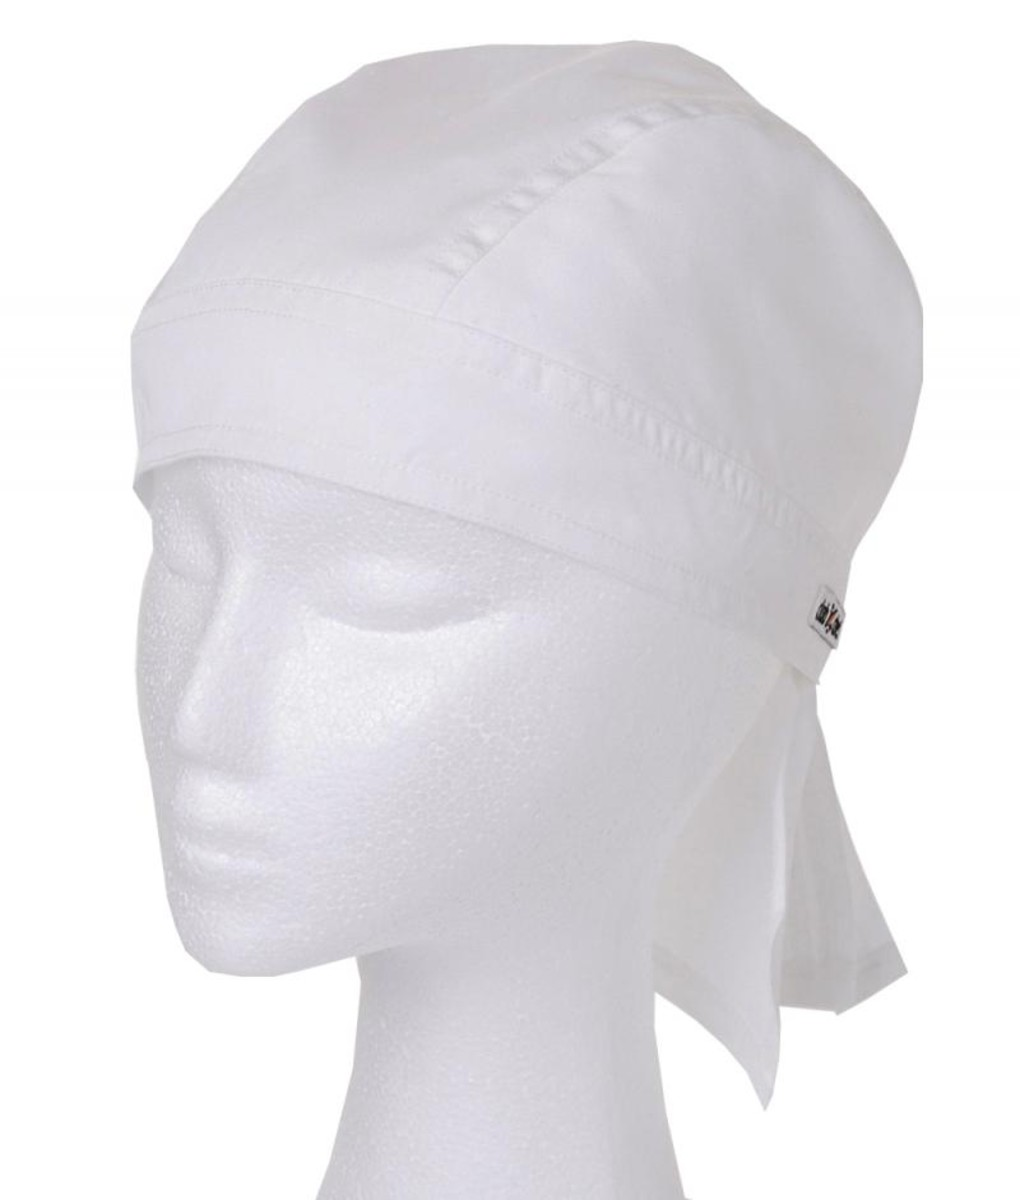 Bandana White by Club Chef